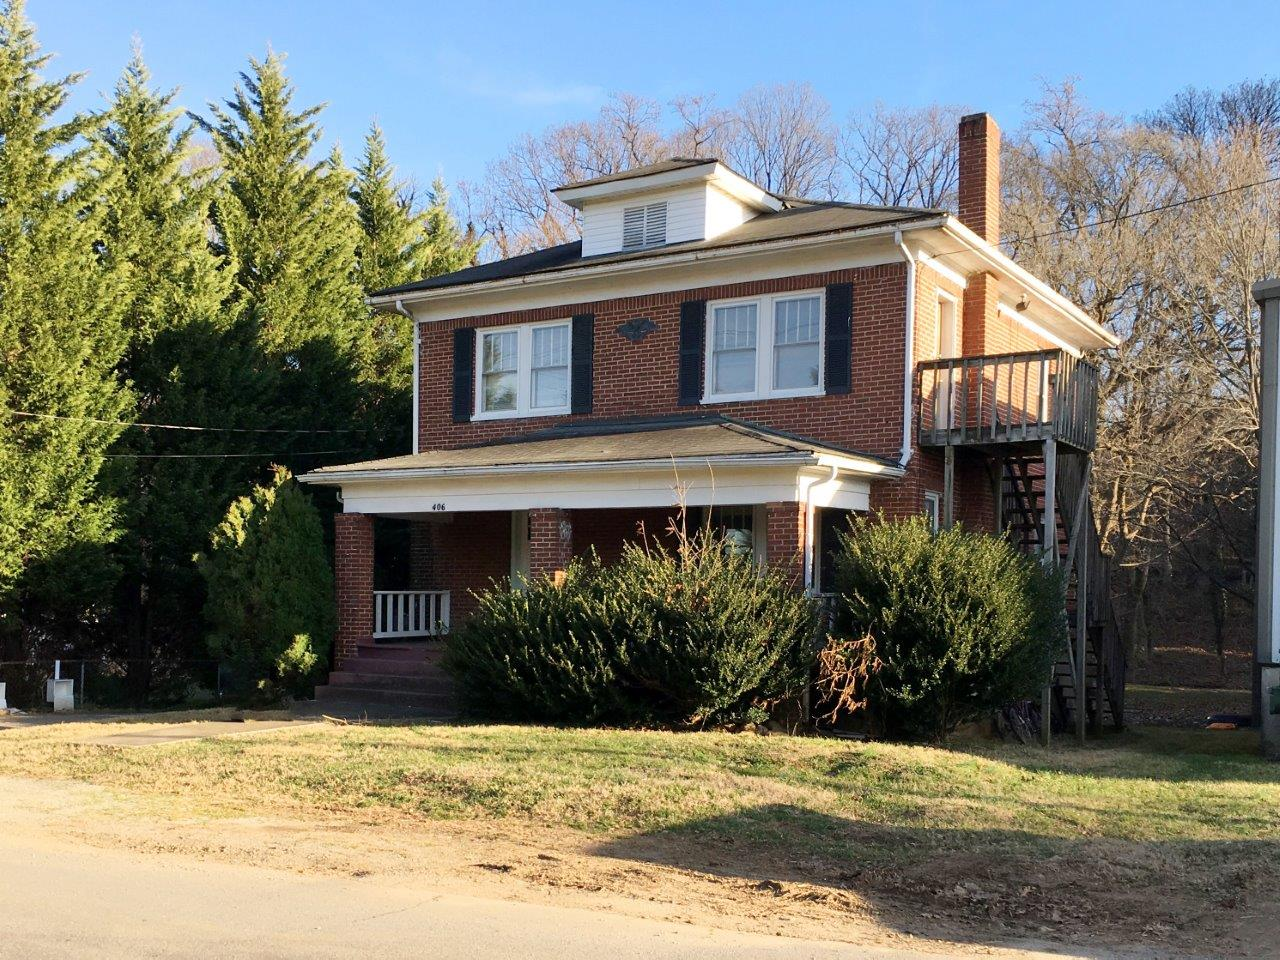 Real Estate Auction: City of Salem Delinquent Tax Properties